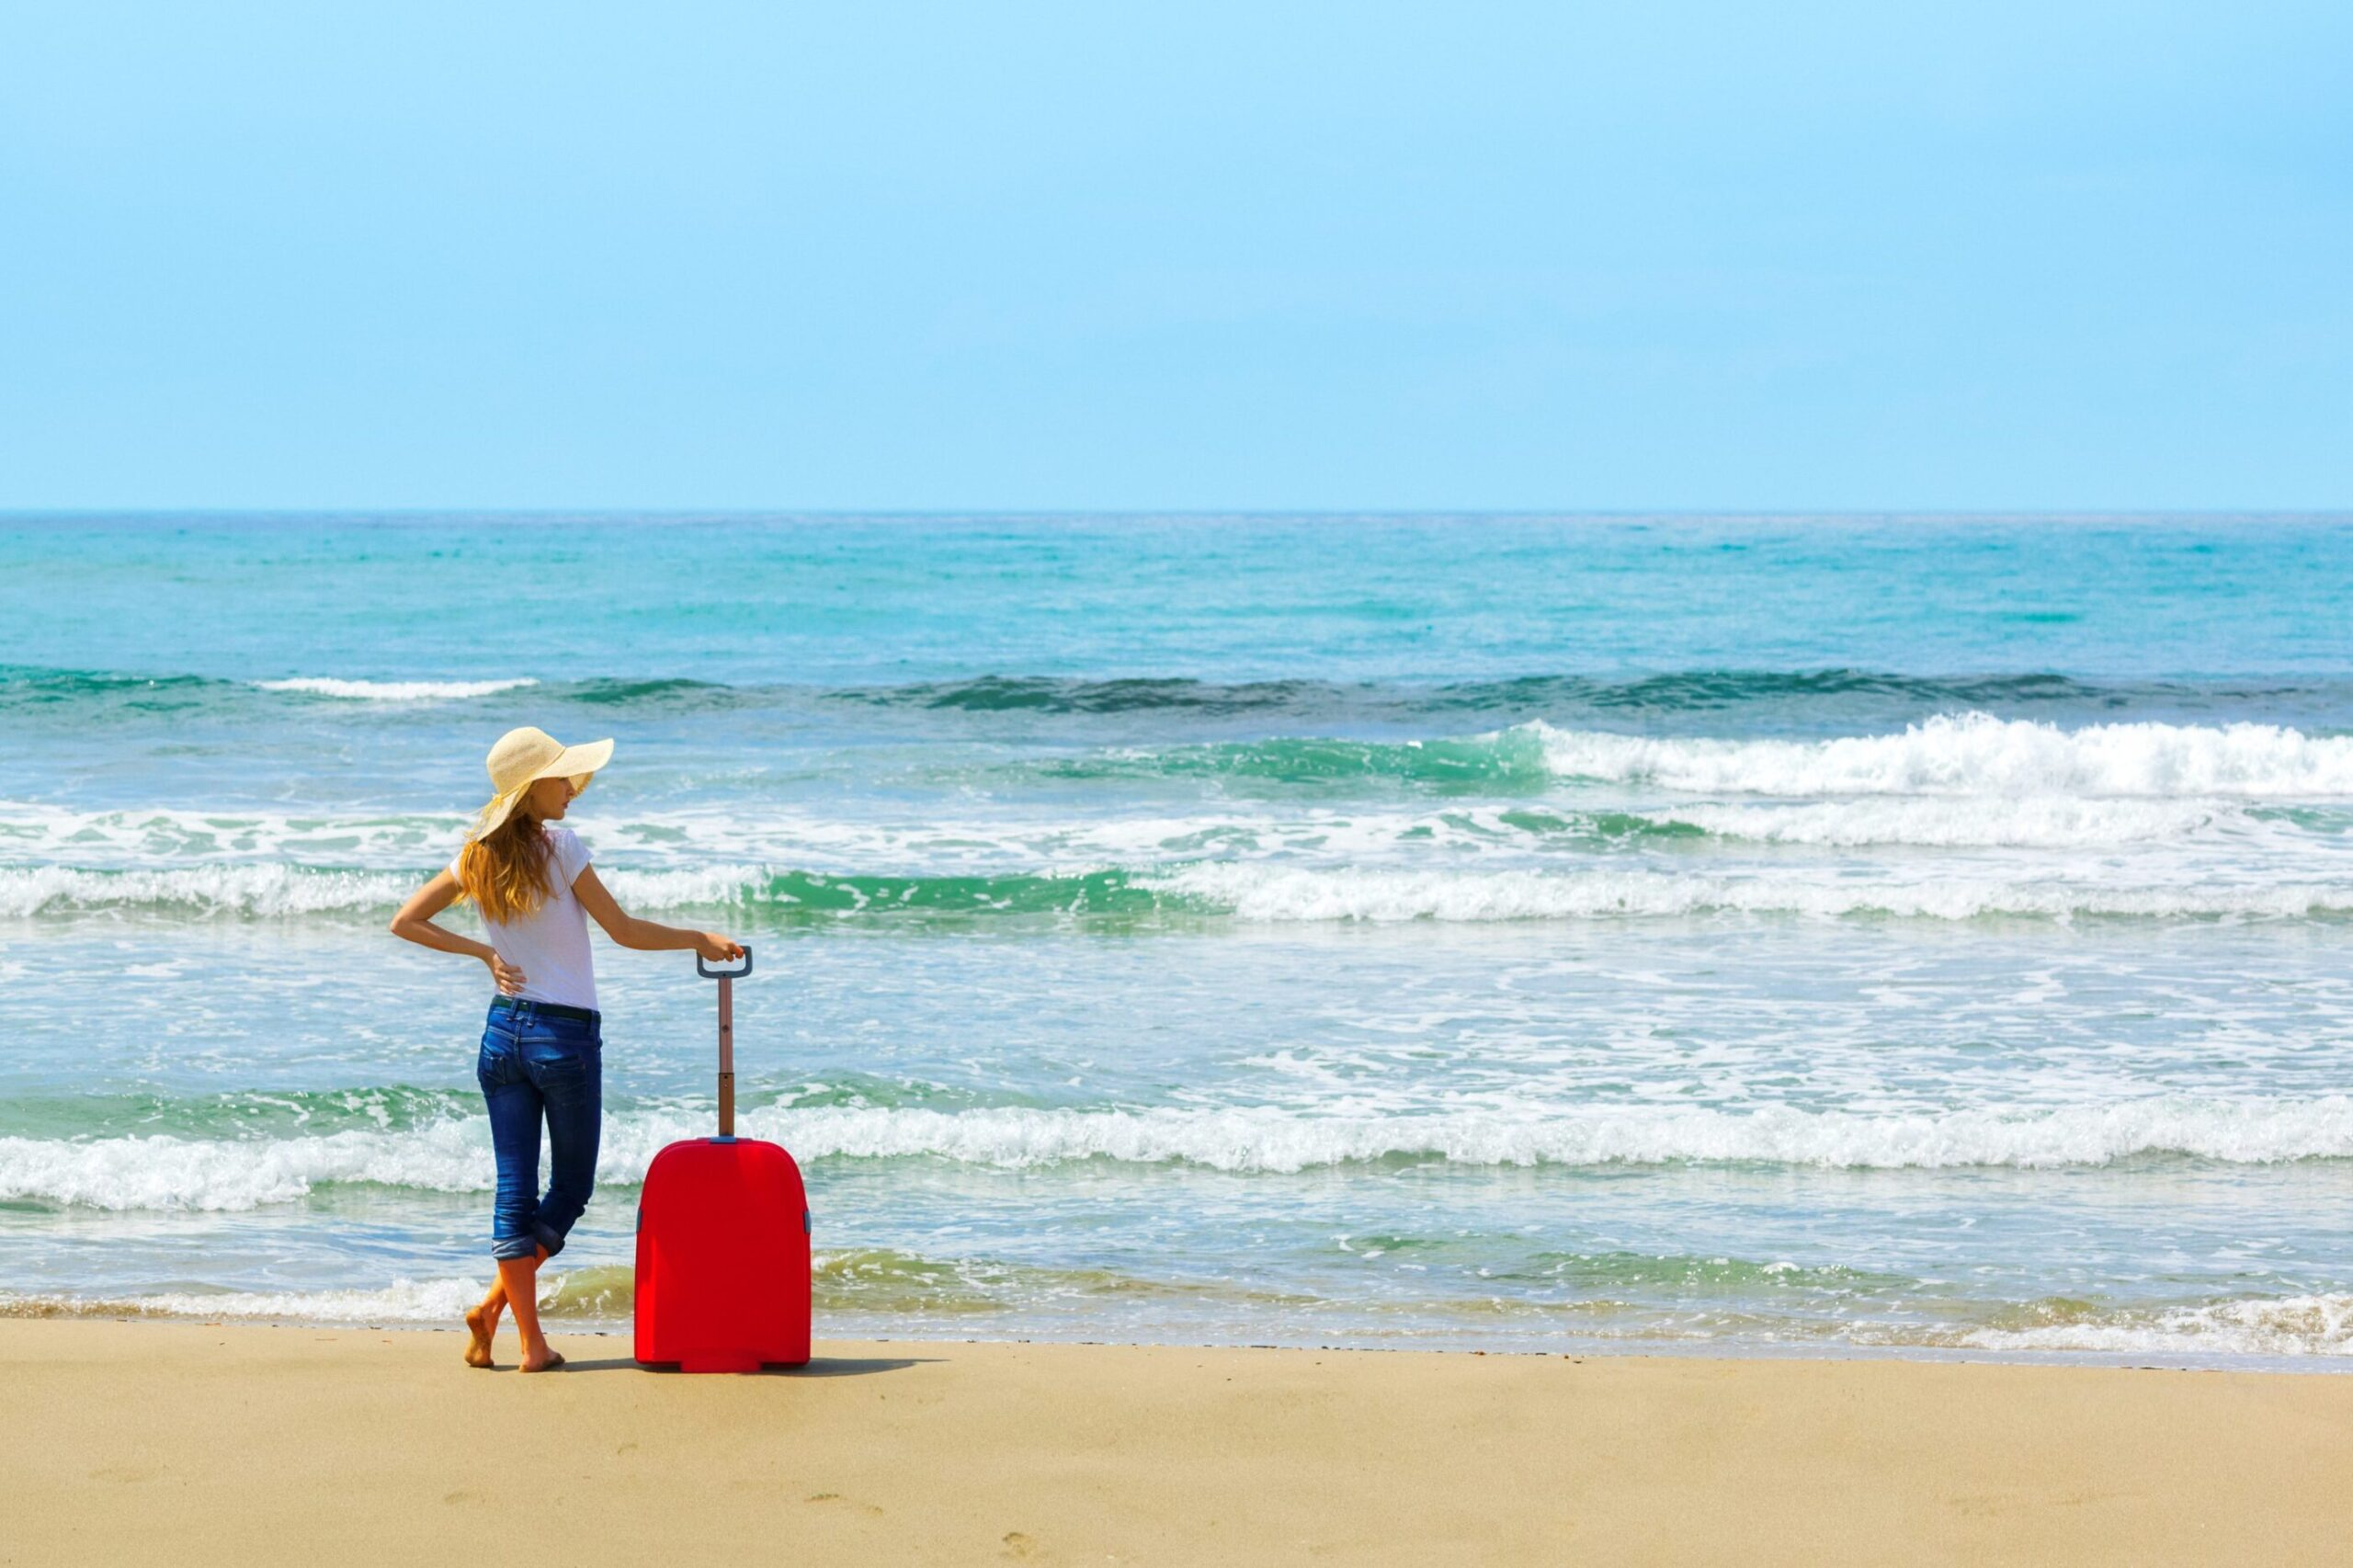 Find out what to pack for San Diego from what people wear to helpful beach gear.